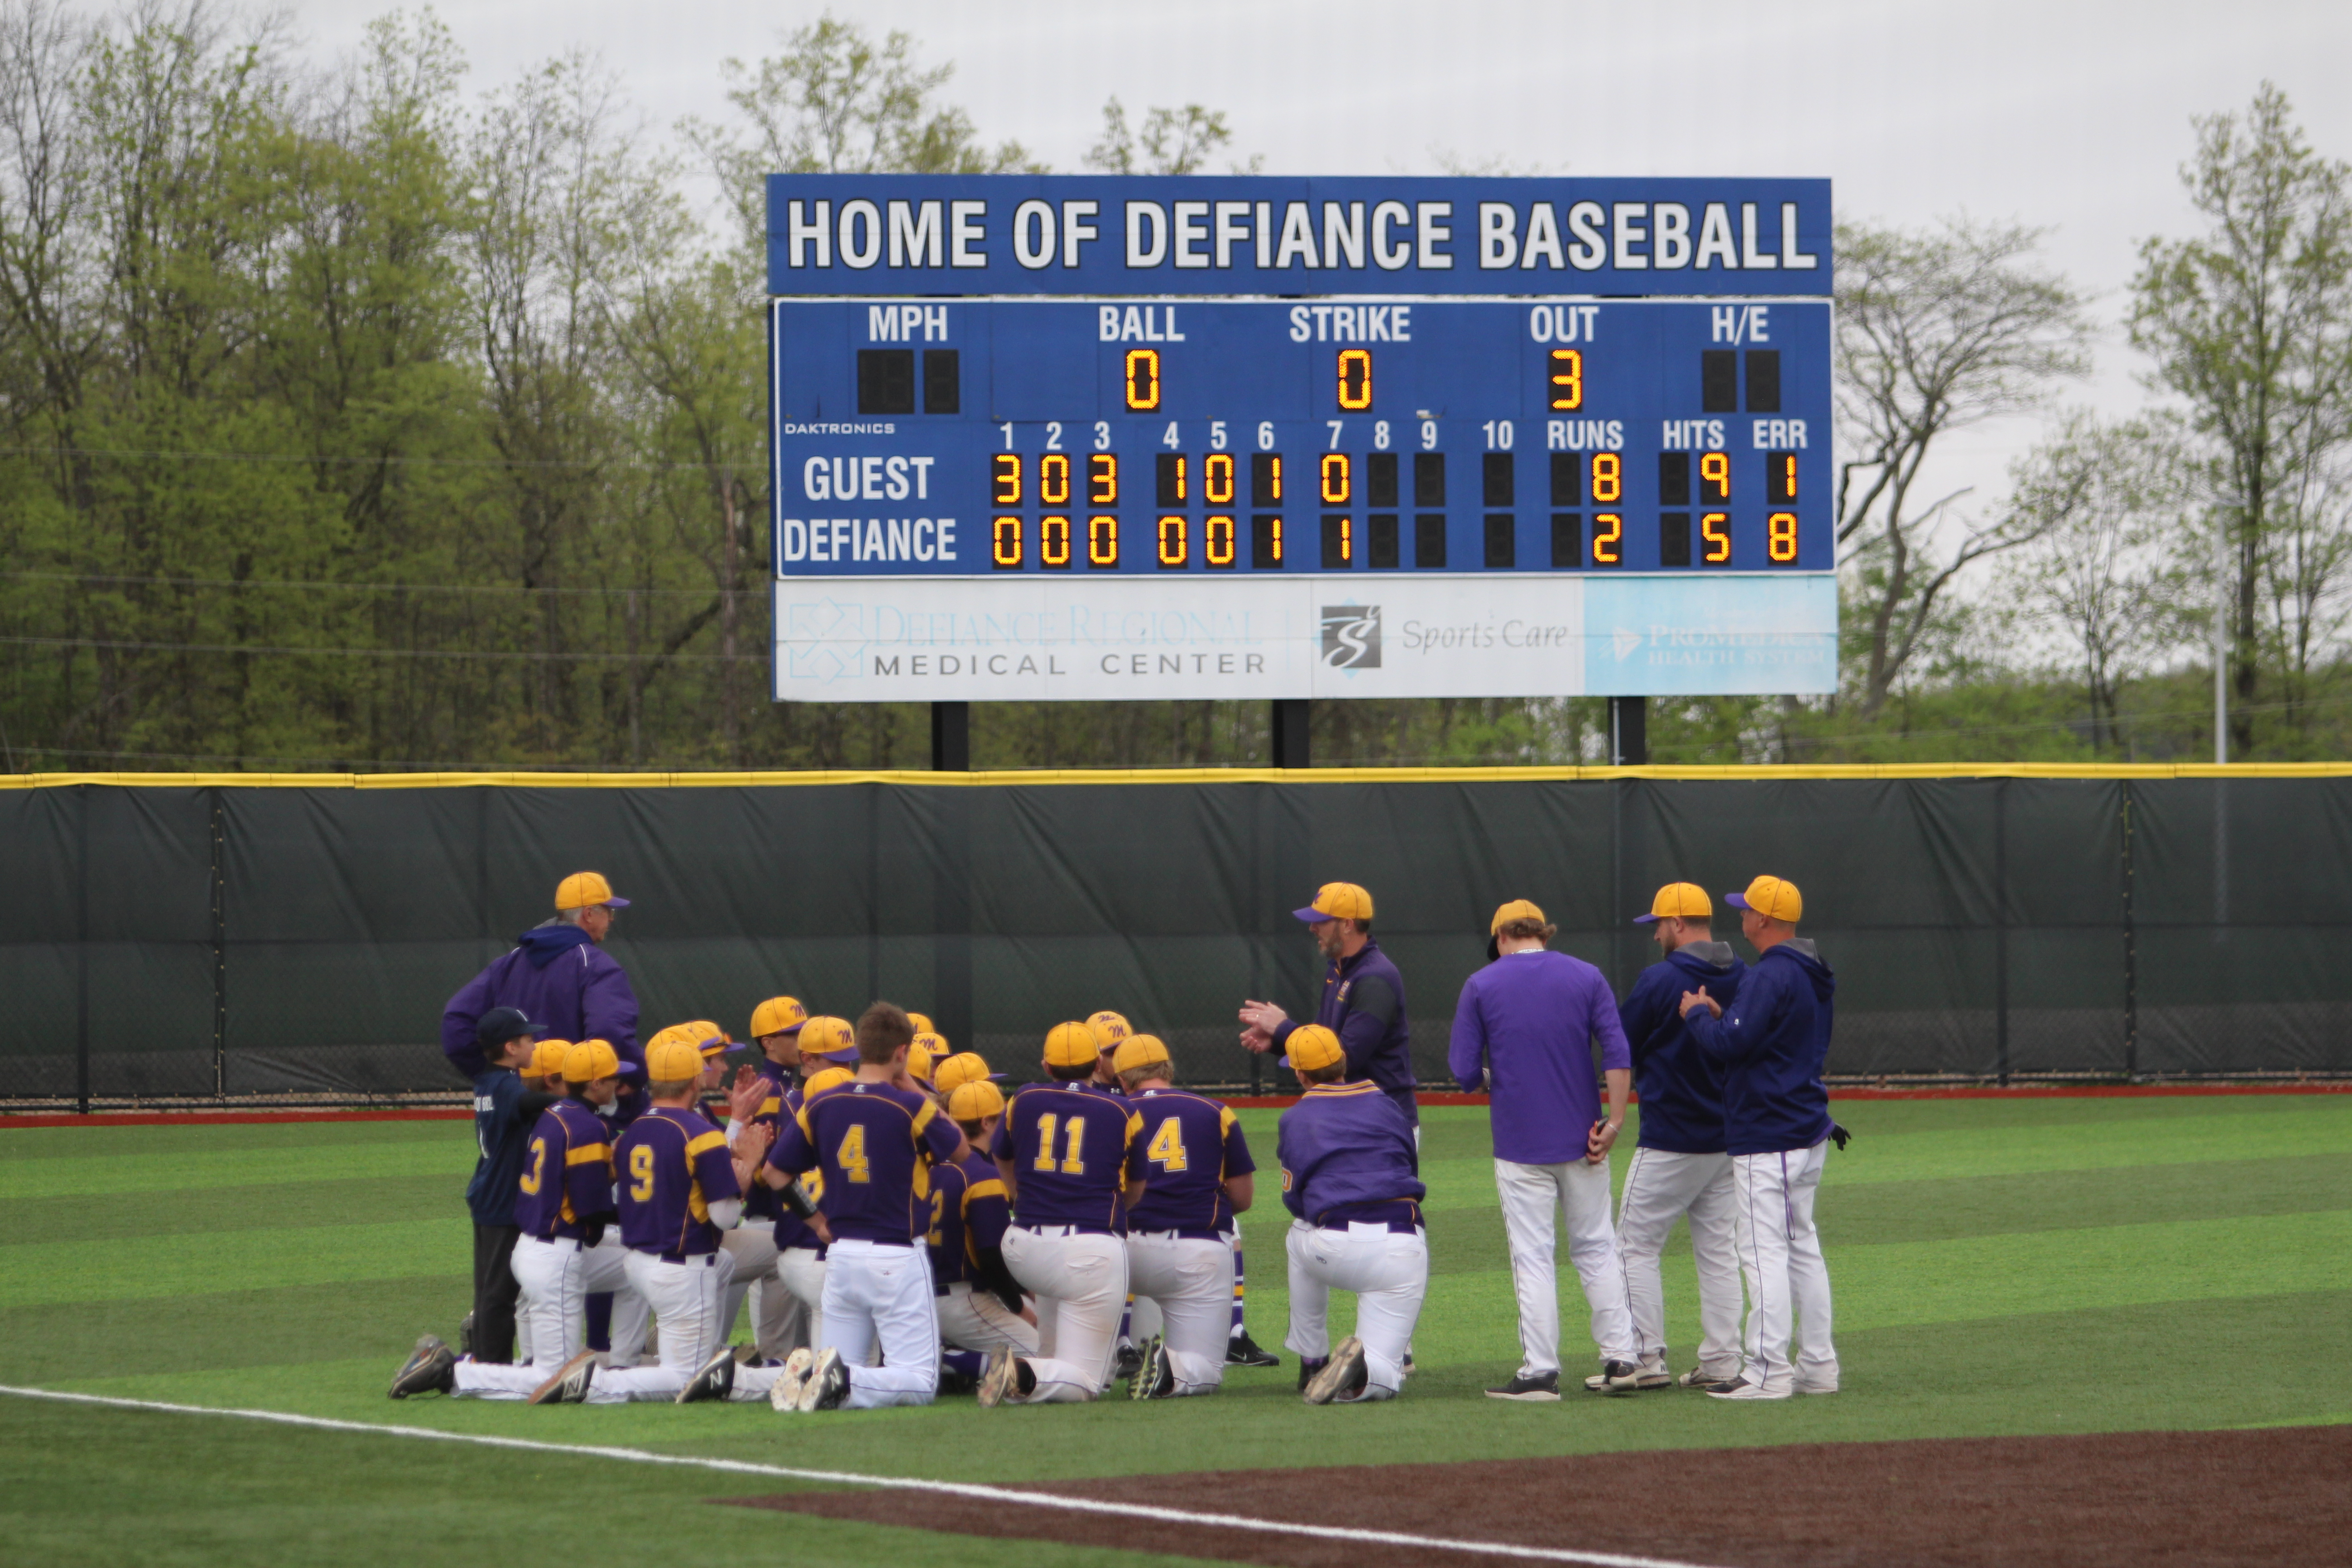 Varsity Baseball beats Defiance – Advance to DII District Semifinals